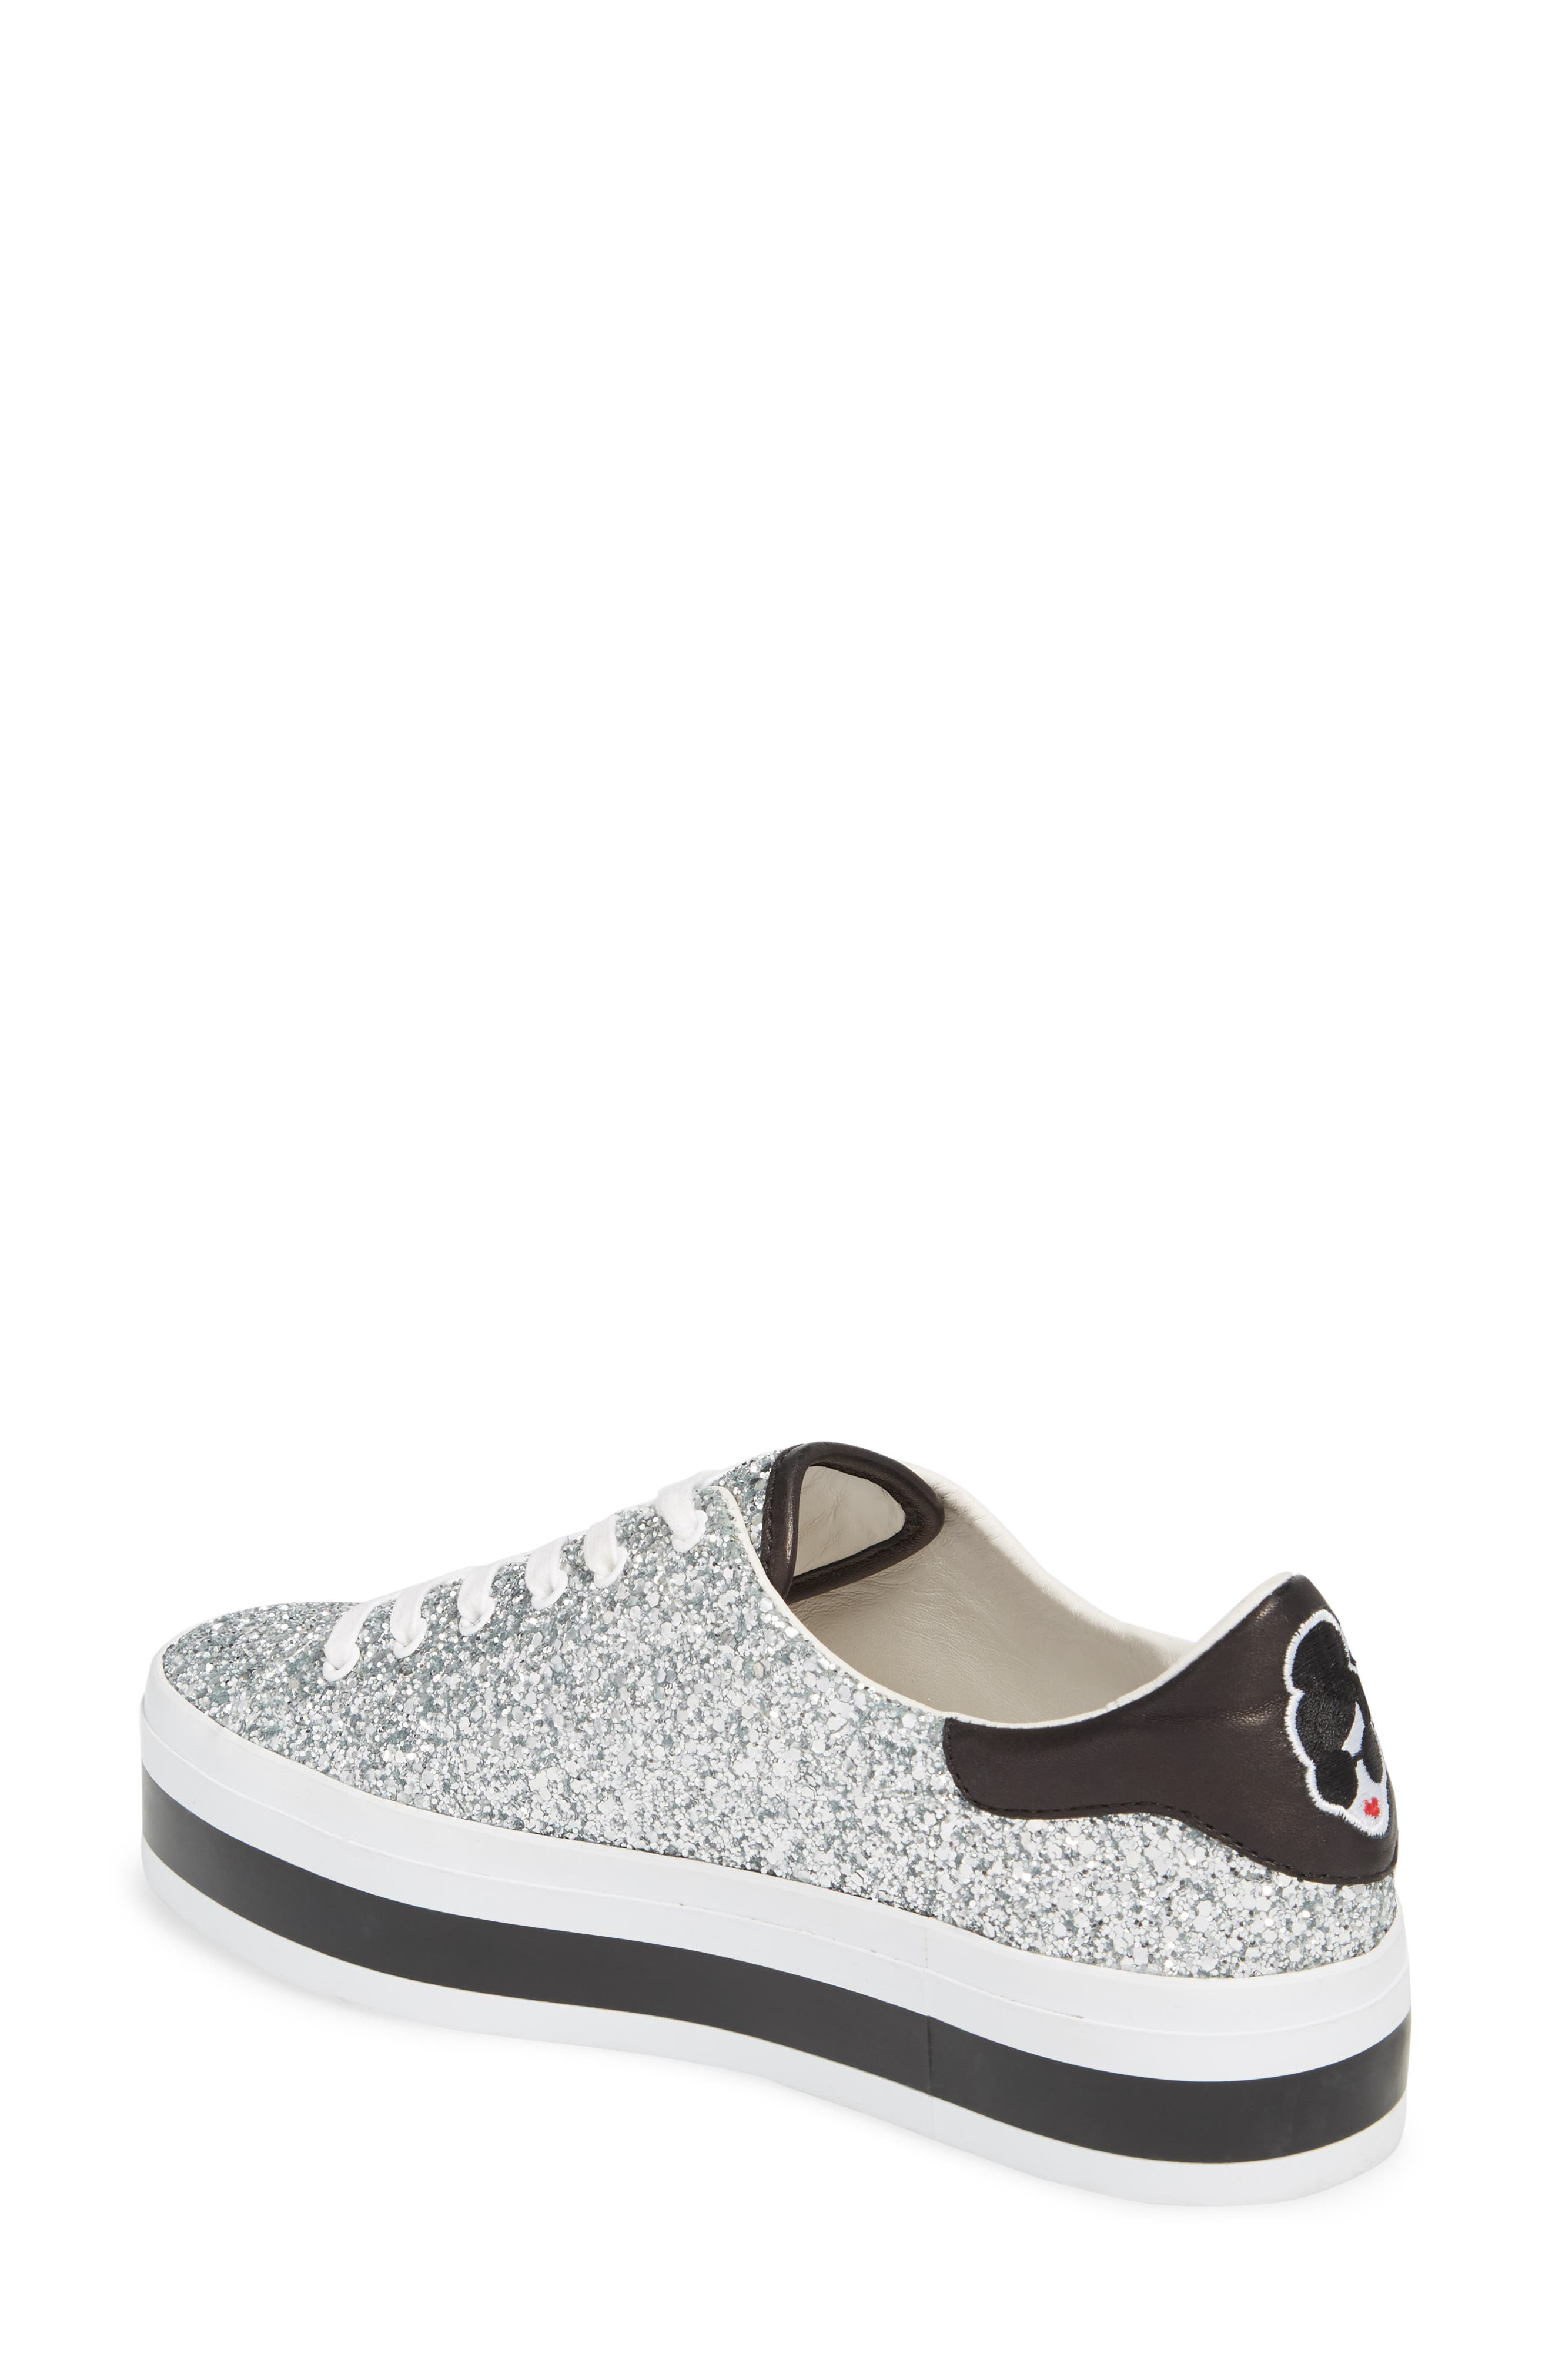 Ezra Flatform Sneaker,                             Alternate thumbnail 2, color,                             SILVER